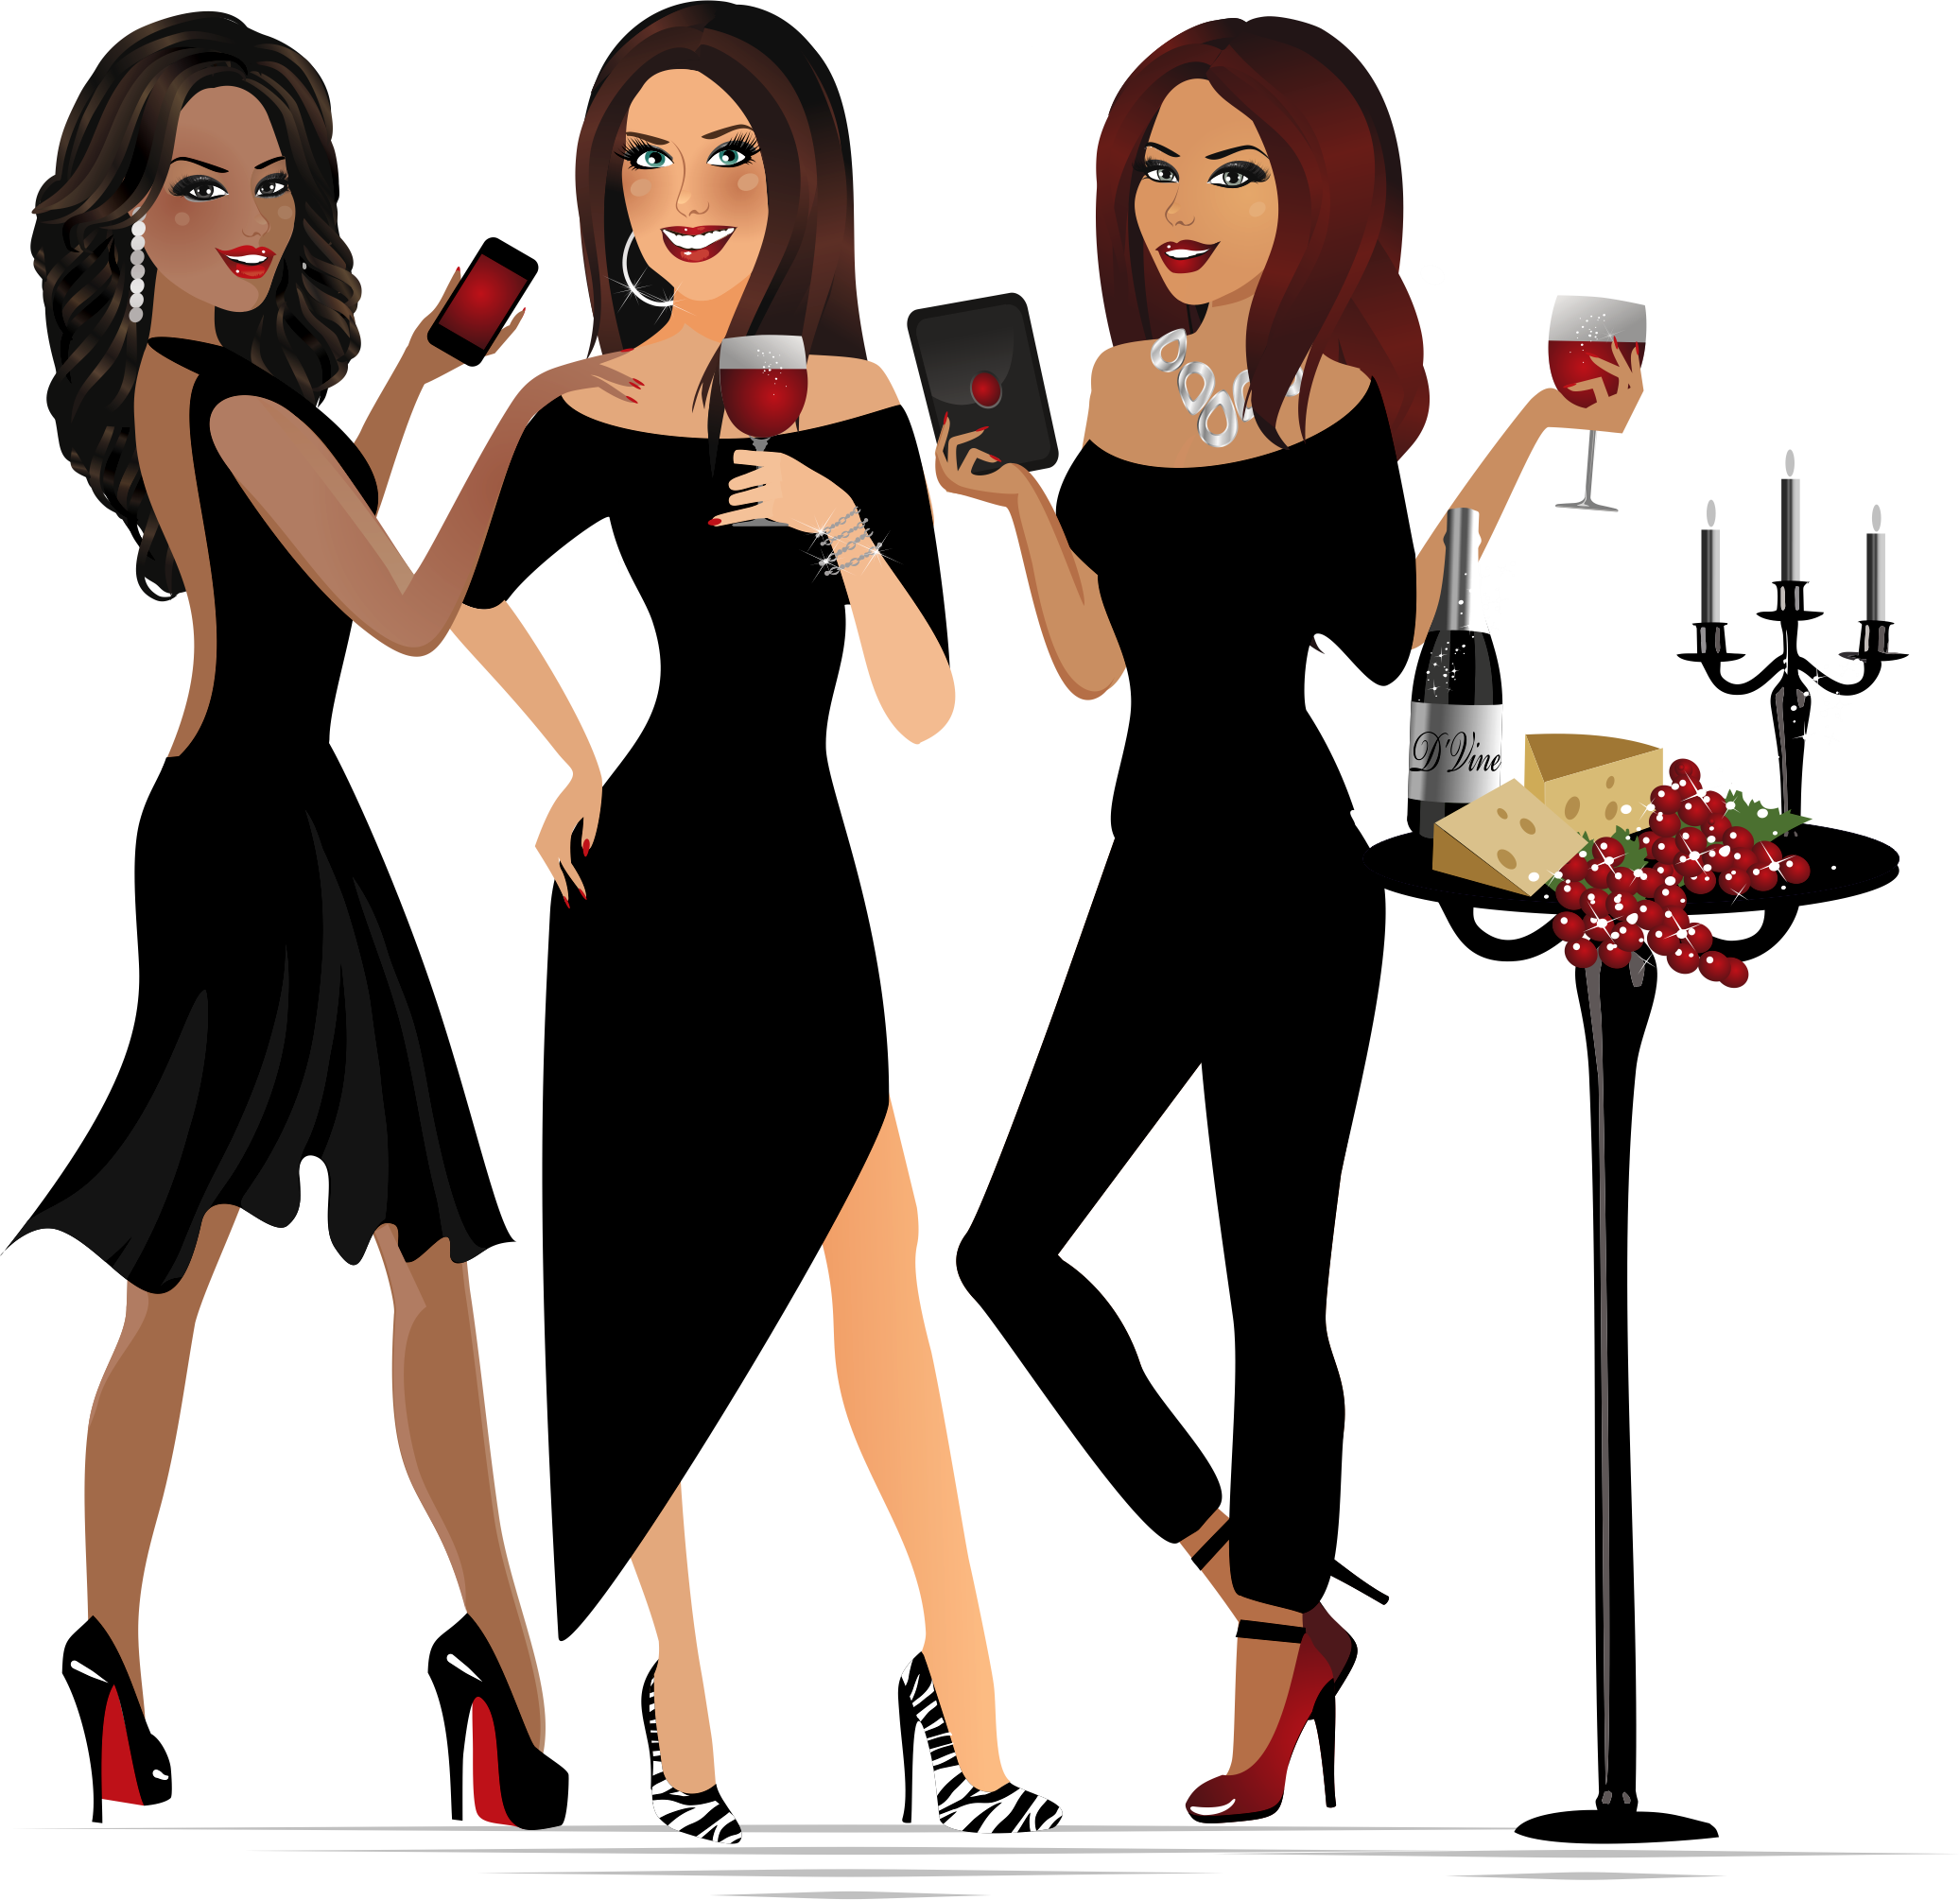 Create a sexy, sassy, and upscale brand image that conveys luxury experiences with wine & business connection